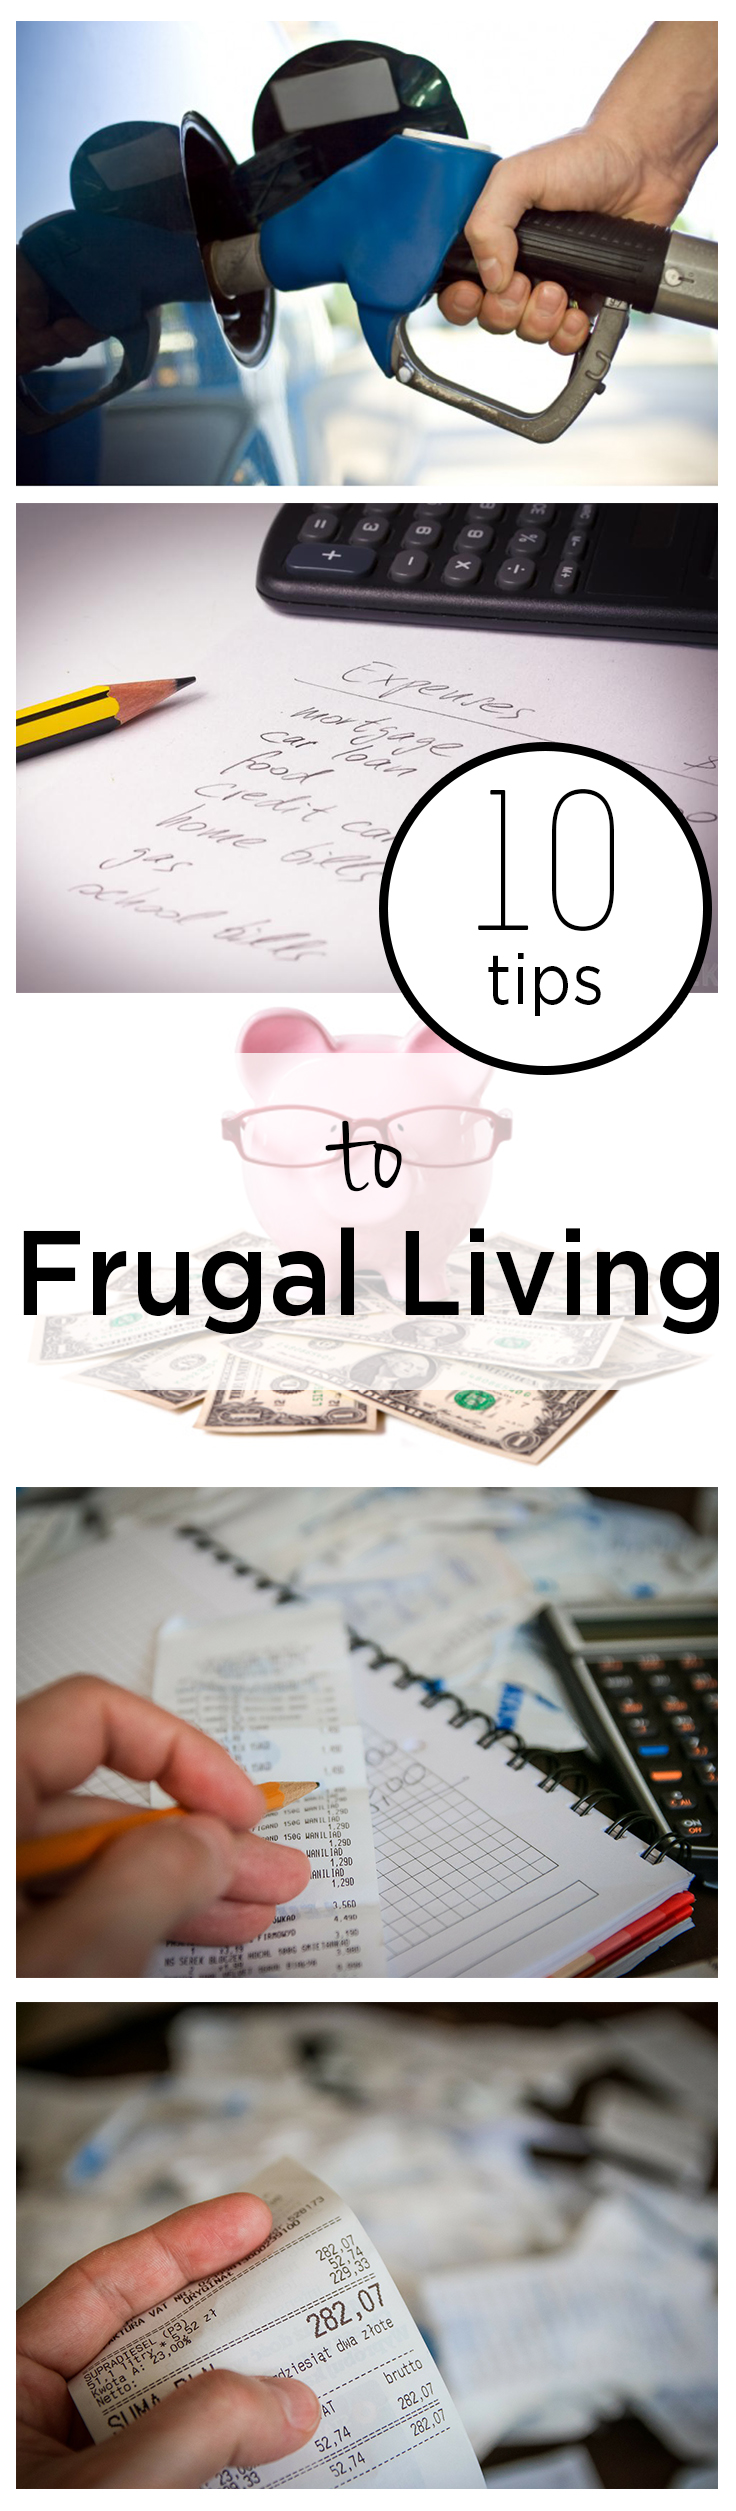 Frugal living, saving money, how to save money, money saving tips, popular pin, money, money hacks.